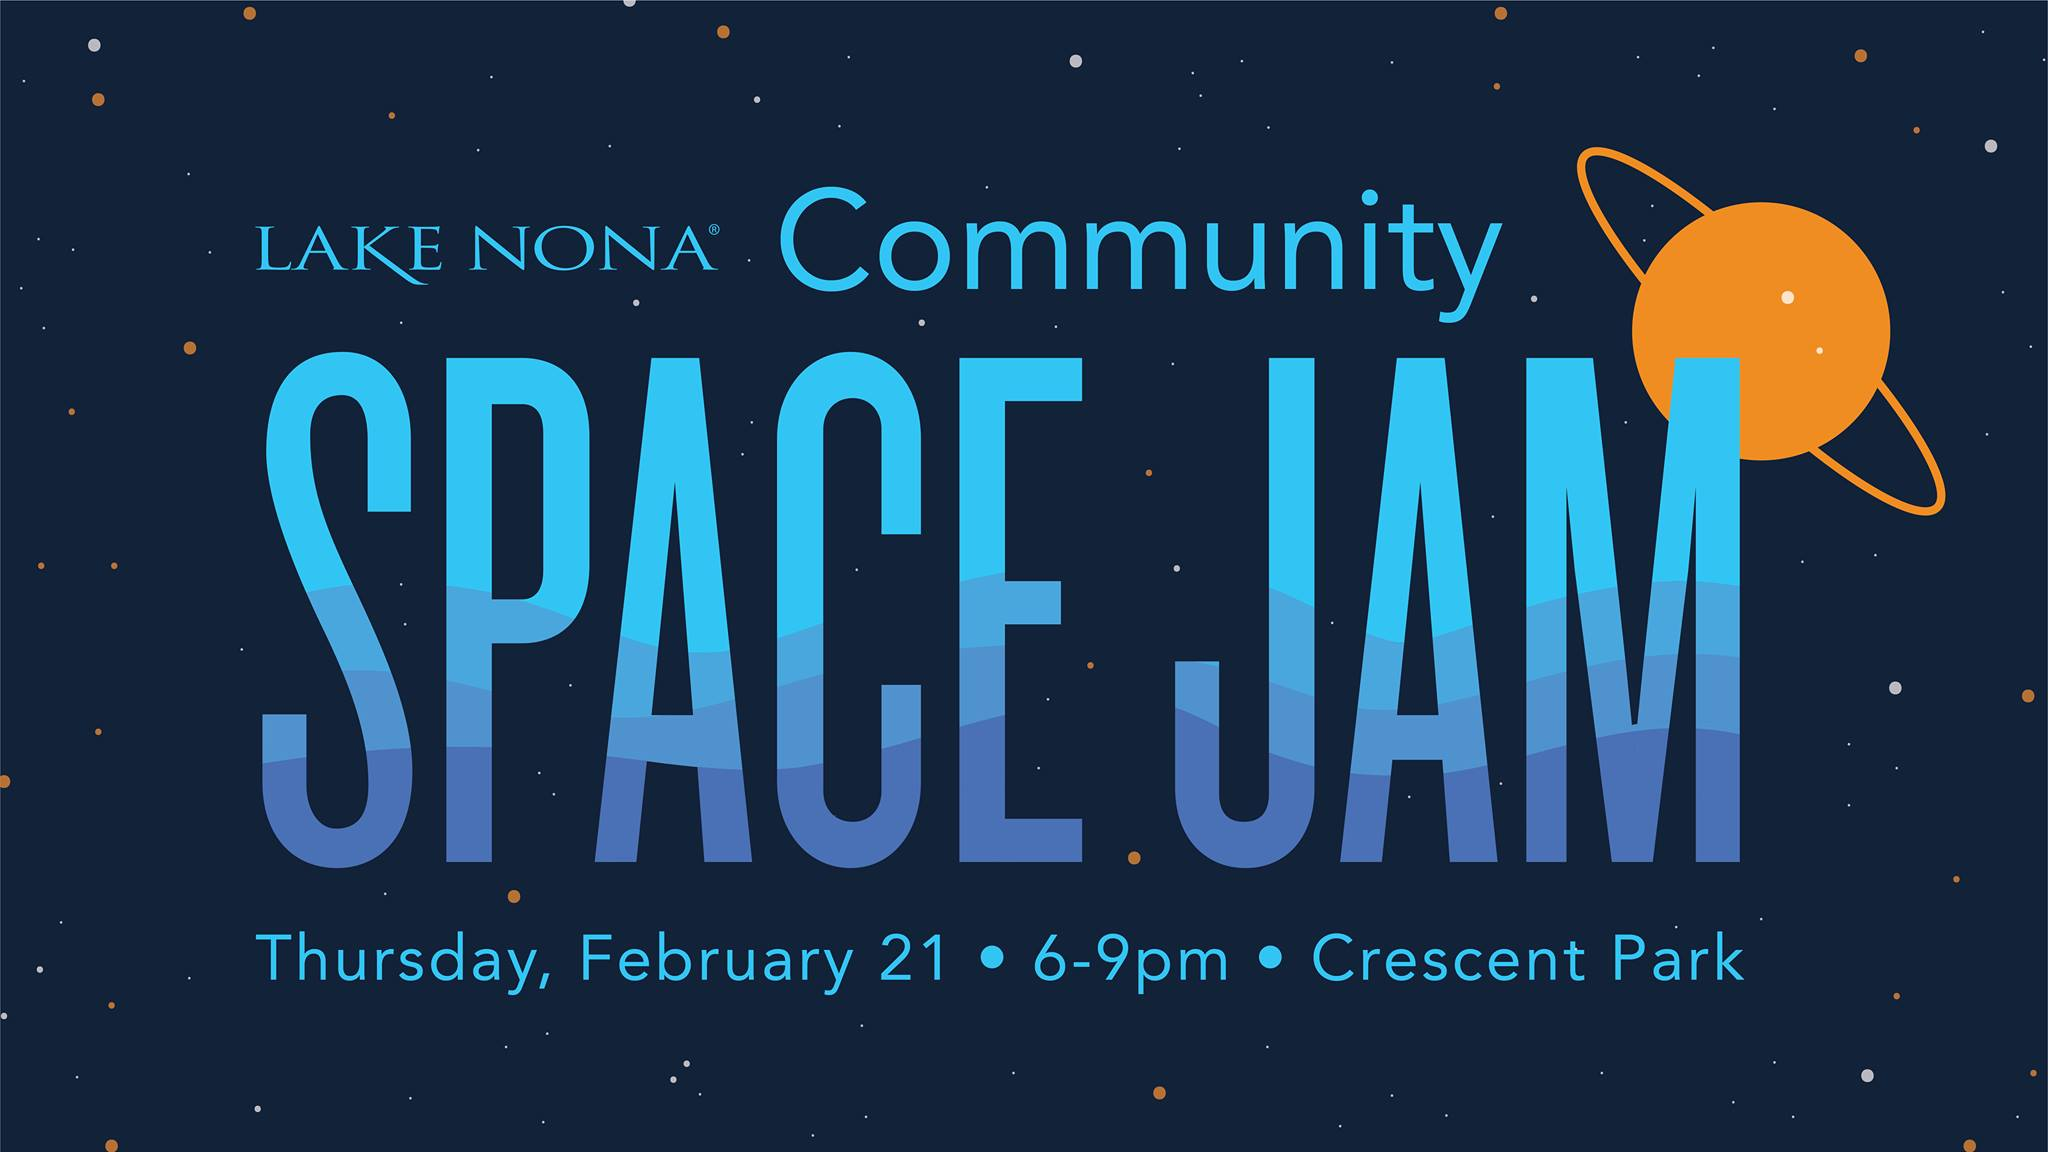 Lake Nona Community Space Jam